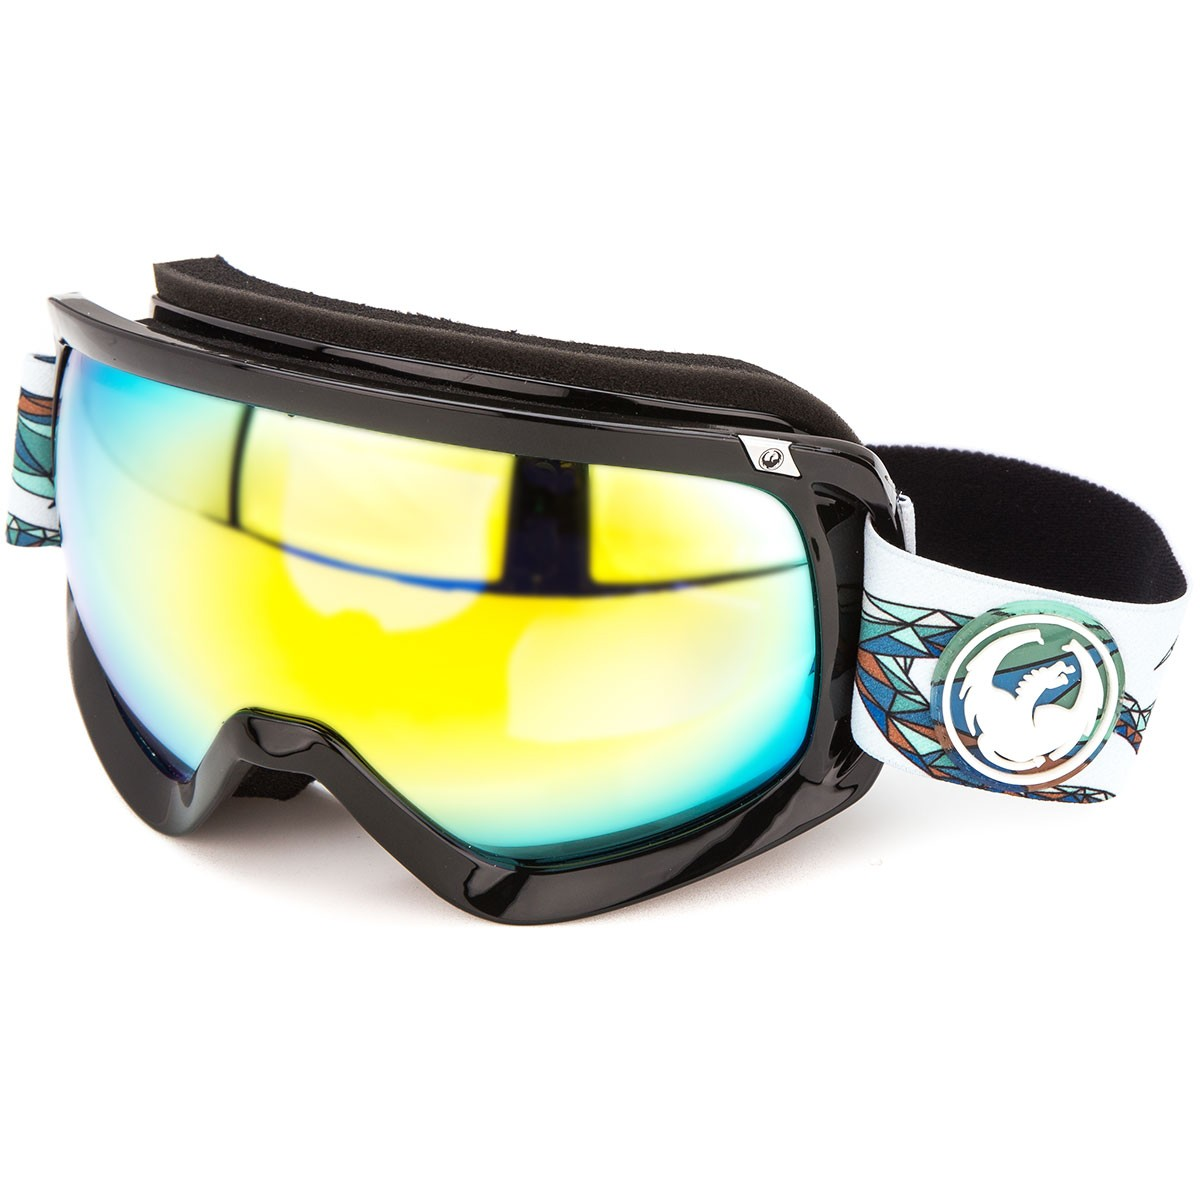 Dragon D3 Snowboard Goggles - Form/Smoke Gold with Yellow Red Ion